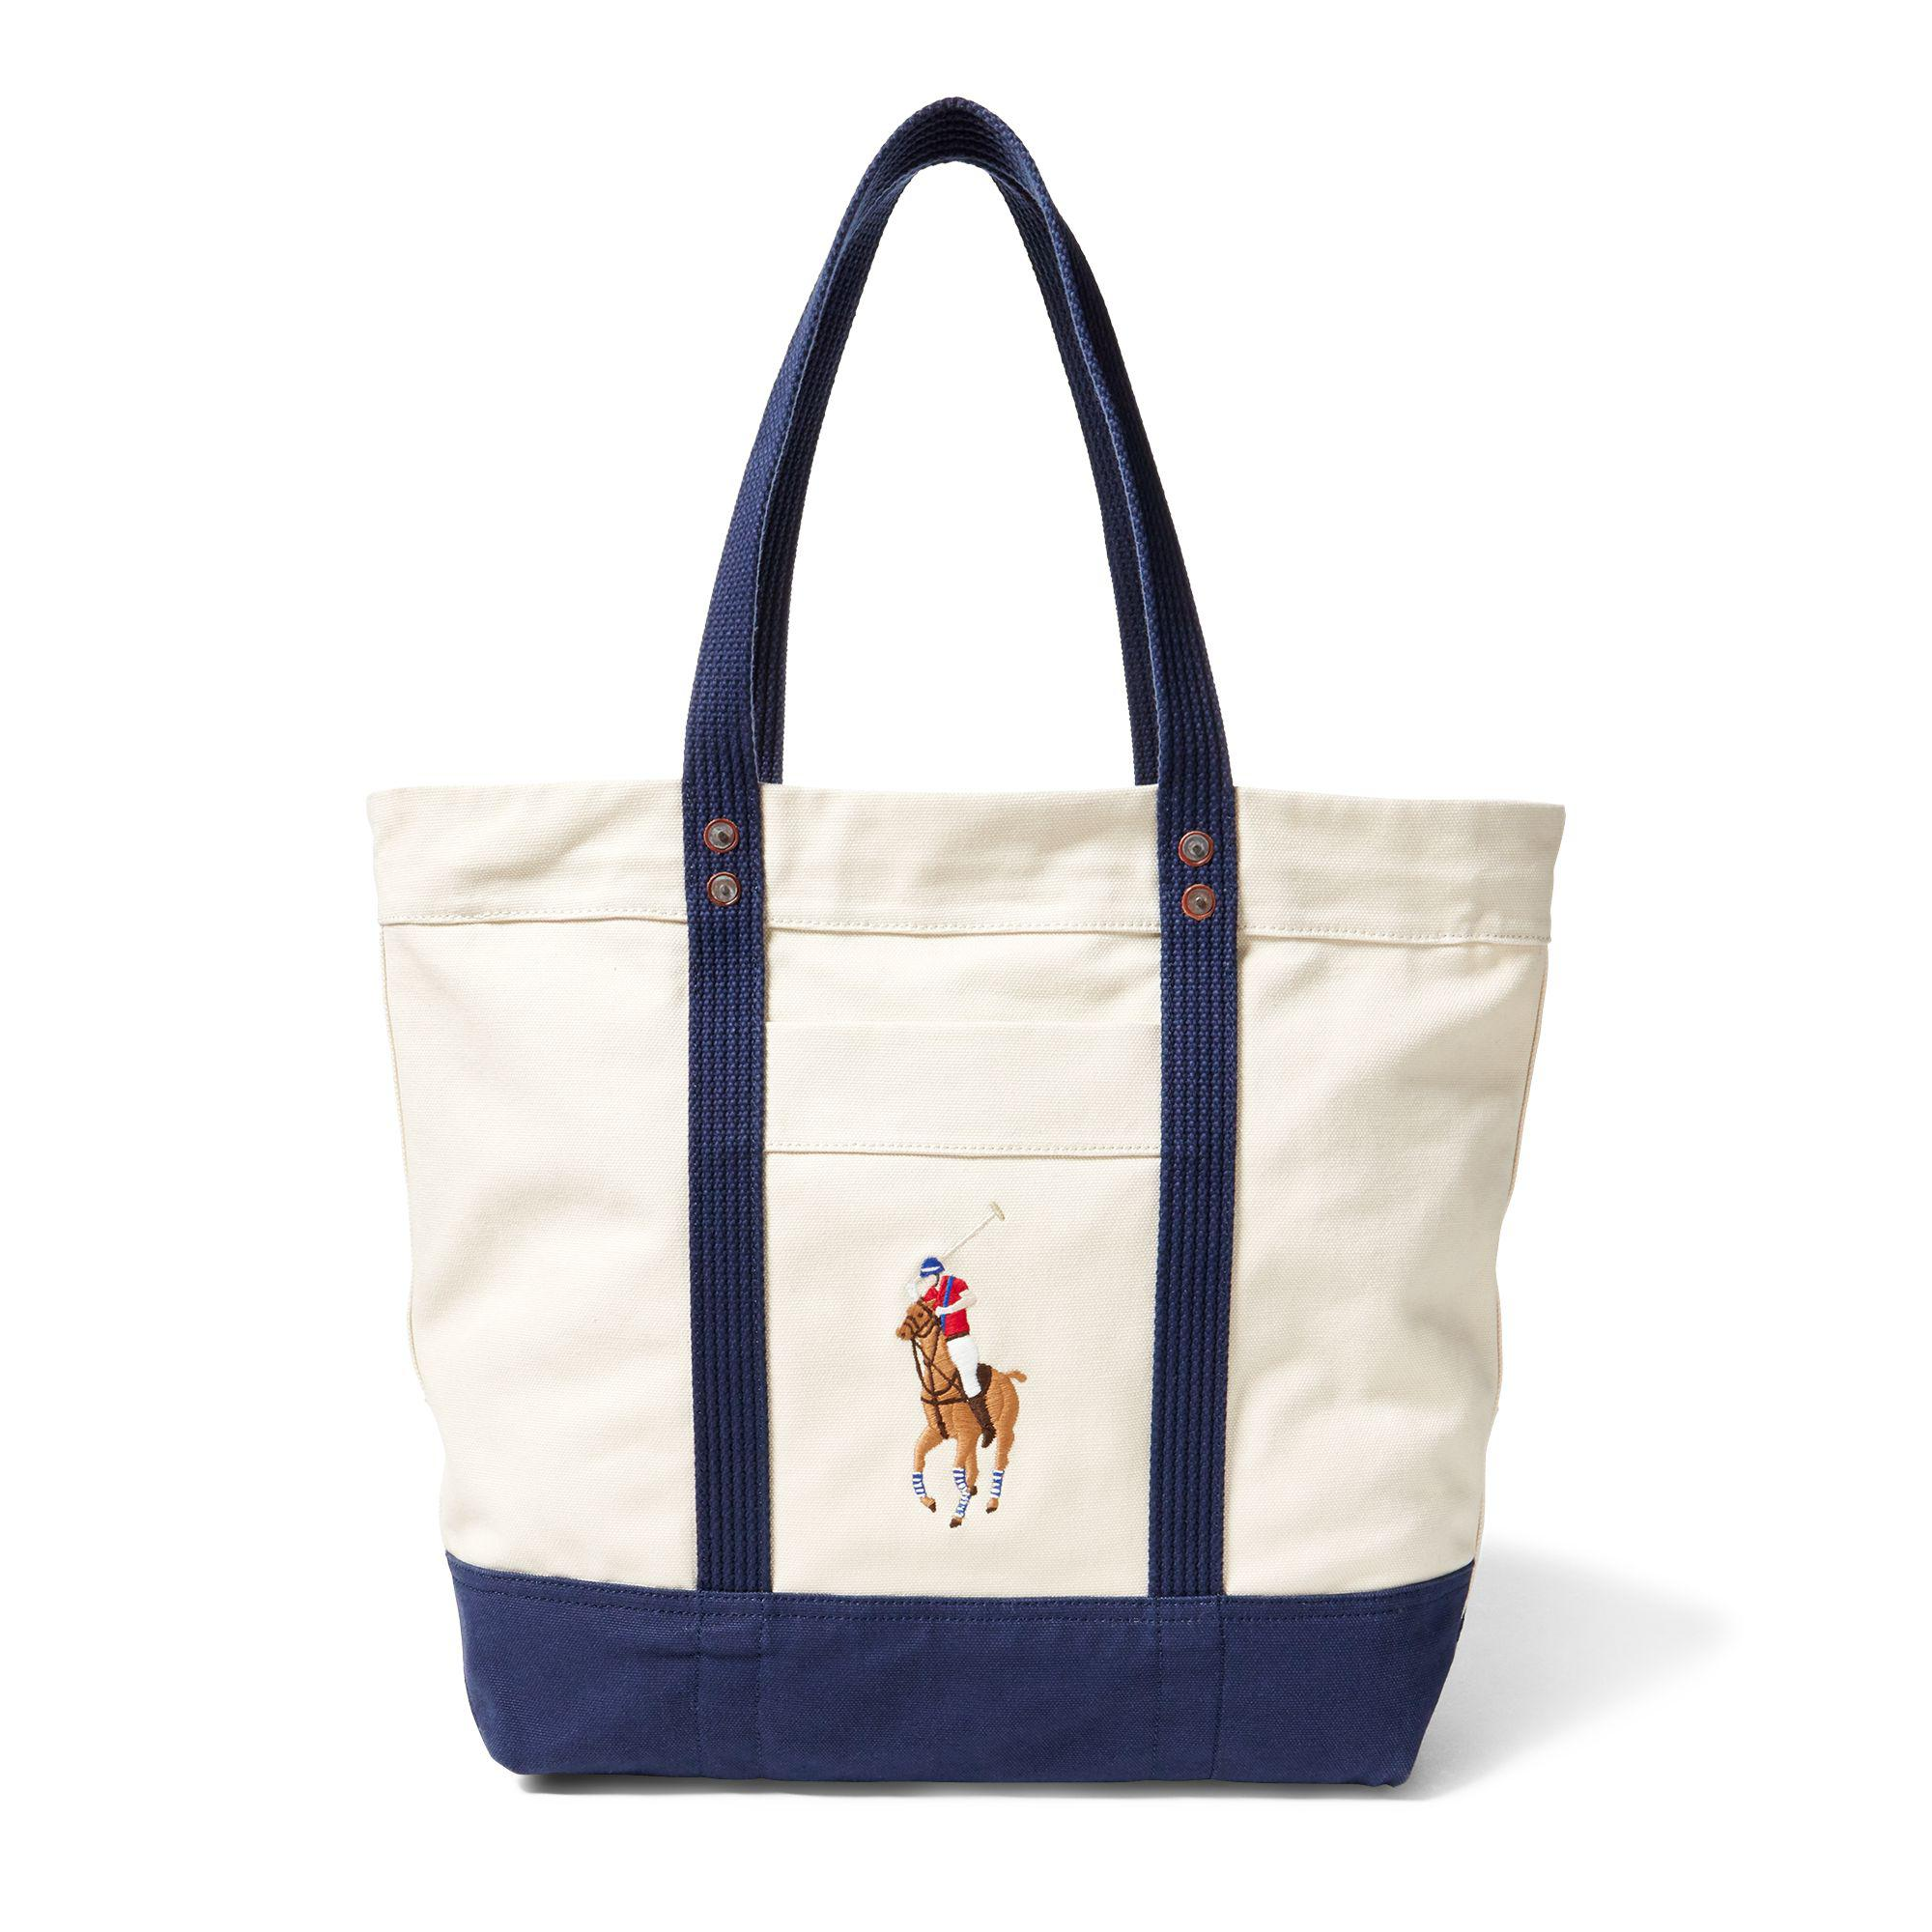 Lyst - Polo Ralph Lauren Canvas Big Pony Tote in Blue for Men 5fa078a383ff2